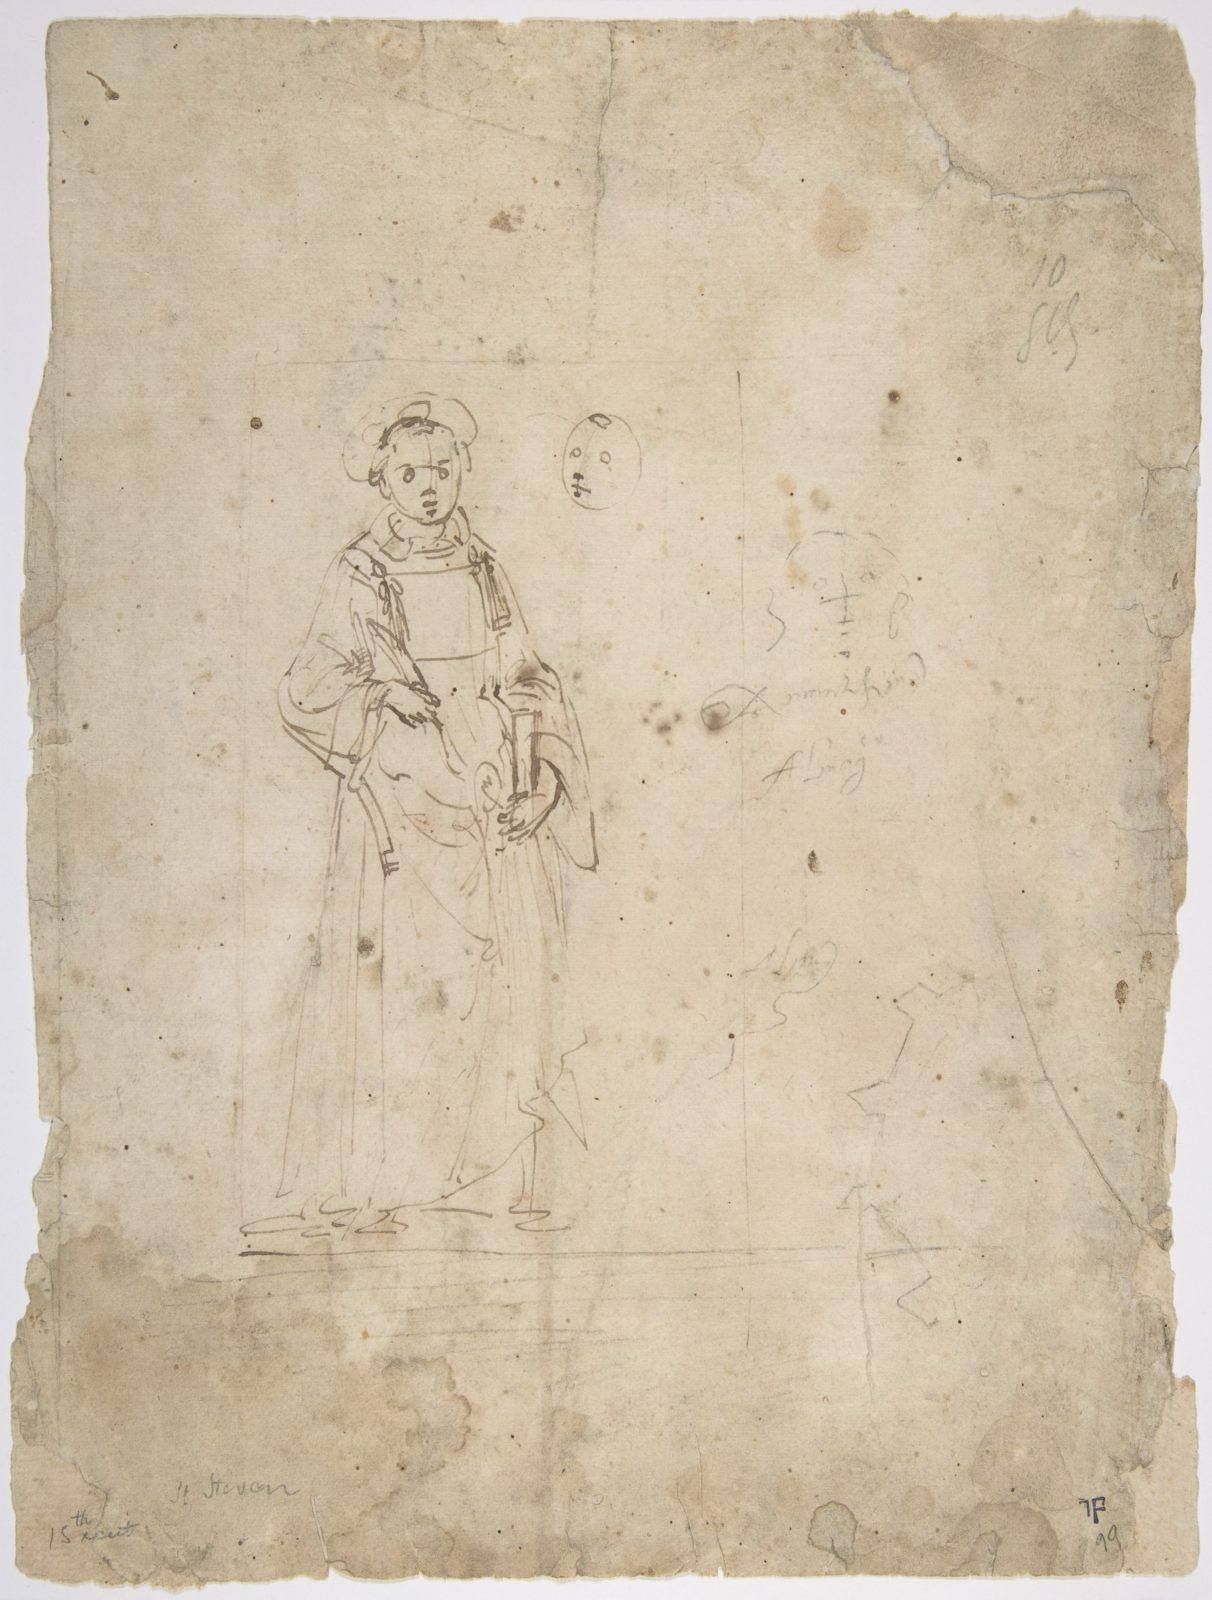 Standing Figure of Saint Stephen and the Head of Another Figure Within the Framing Outlines of a Rectangle, Crude Sketch of the Head of Another Figure, Undecipherable Sketch of a Polygonal or Circular Object with Small Projections